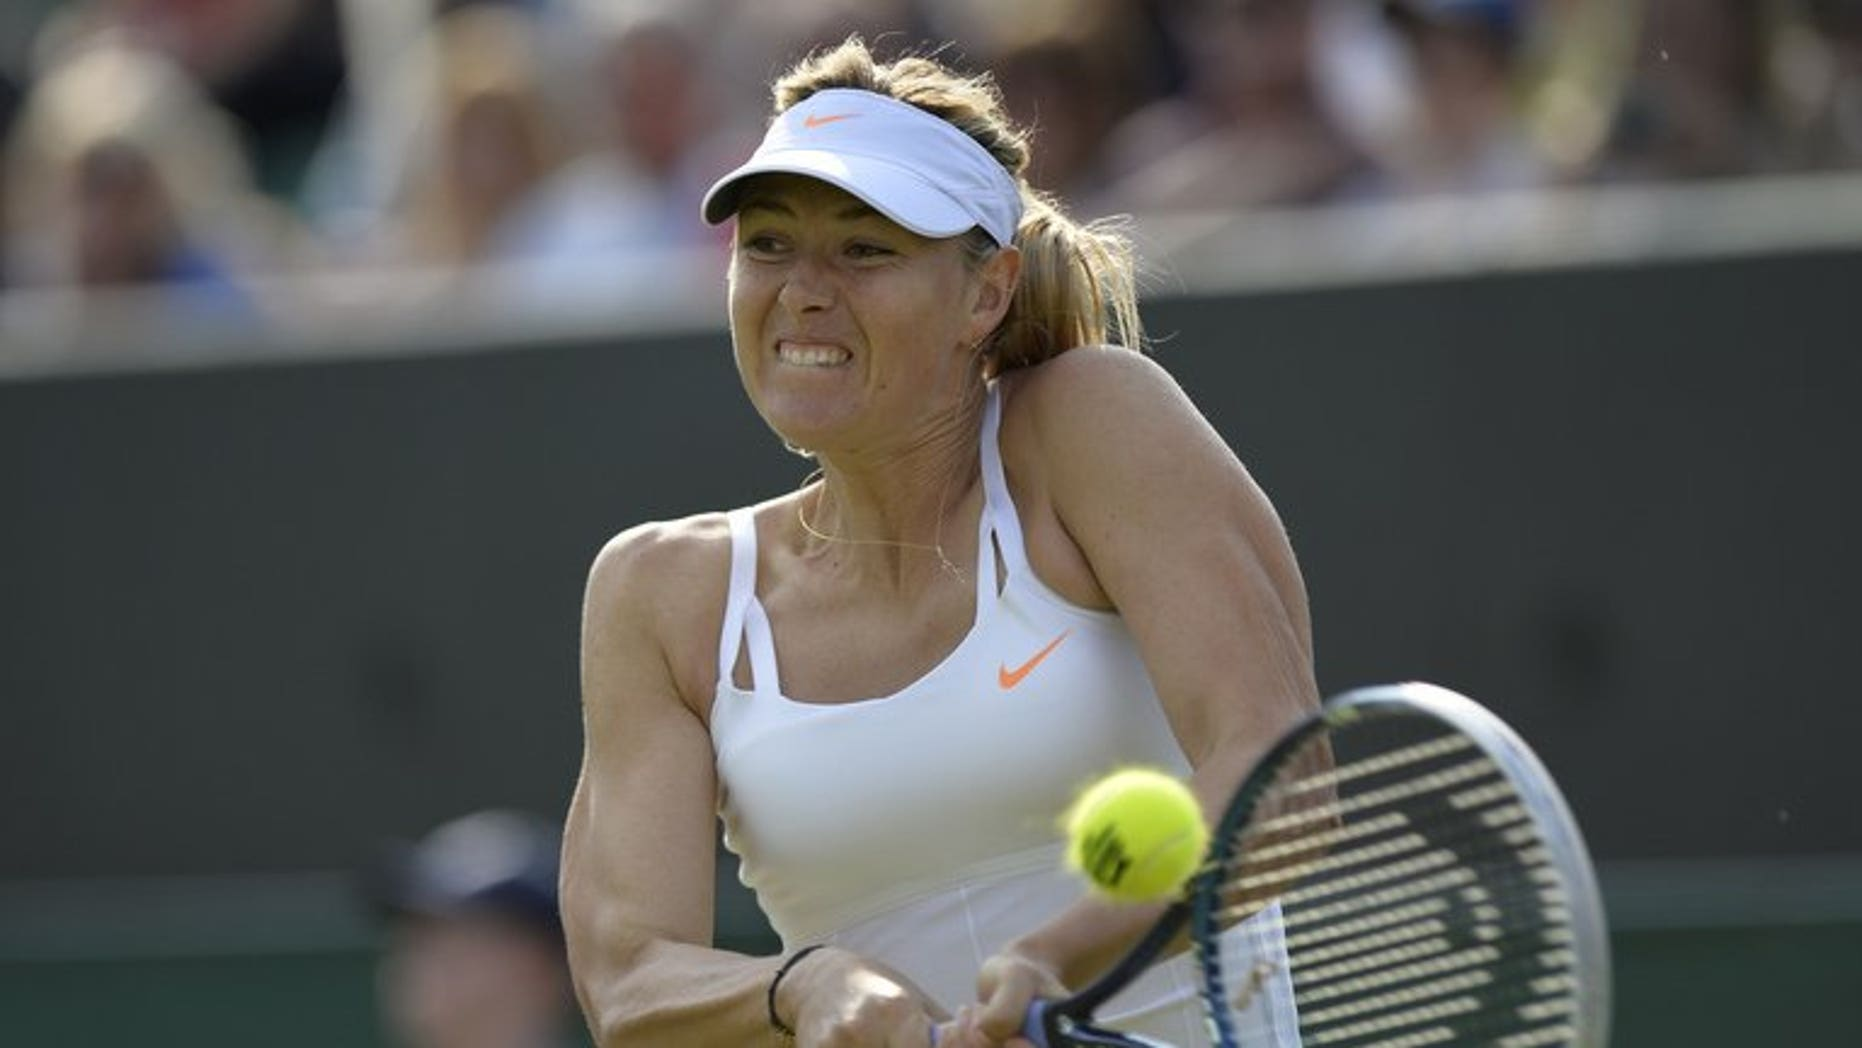 Russia's Maria Sharapova plays at Wimbledon on June 26, 2013. The world number two has withdrawn from the WTA Rogers Cup hardcourt event in Toronto next month because of a nagging left hip injury, organizers said.